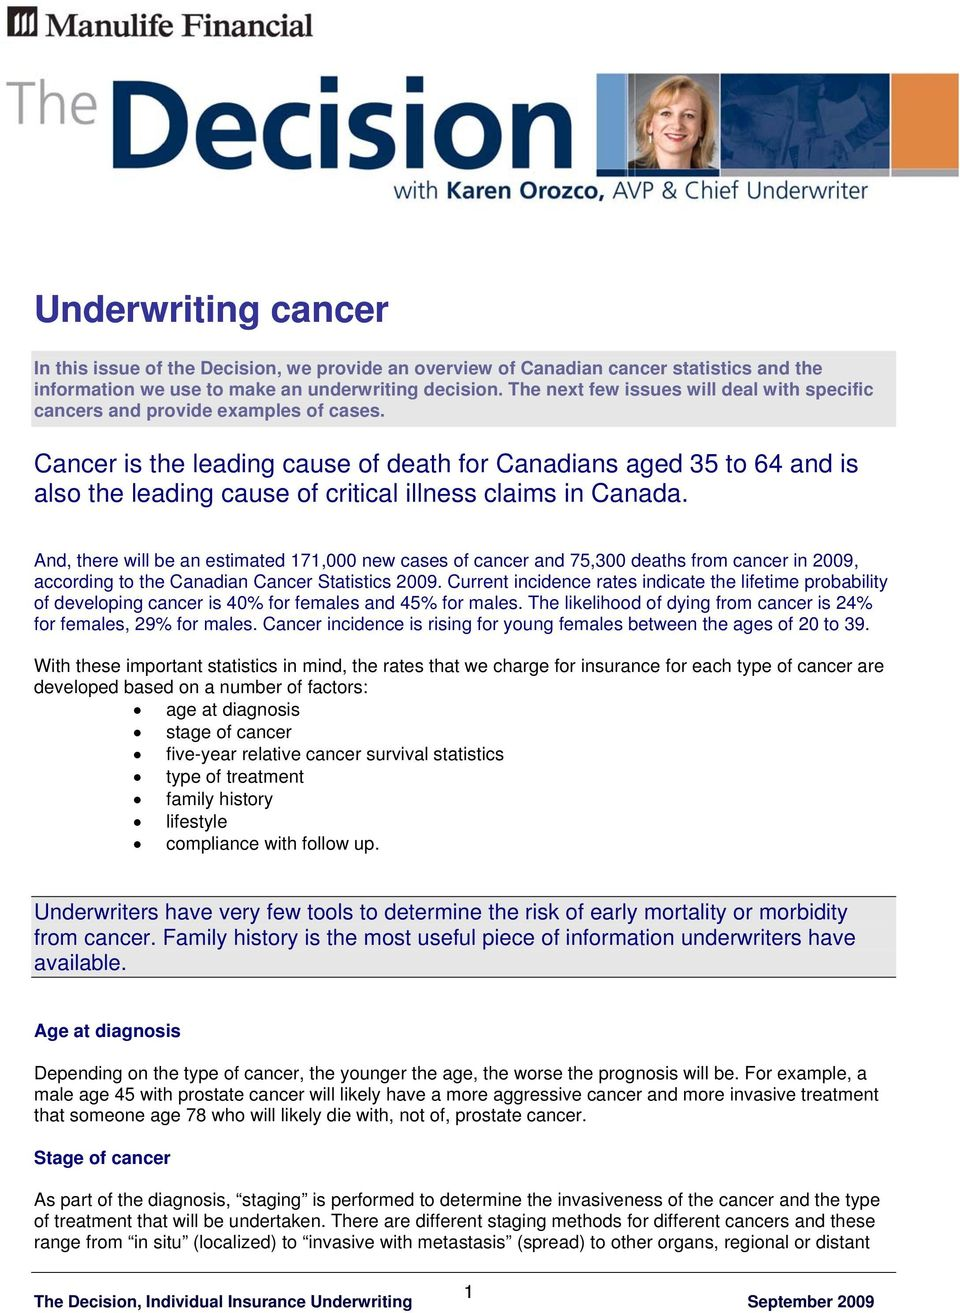 Cancer is the leading cause of death for Canadians aged 35 to 64 and is also the leading cause of critical illness claims in Canada.